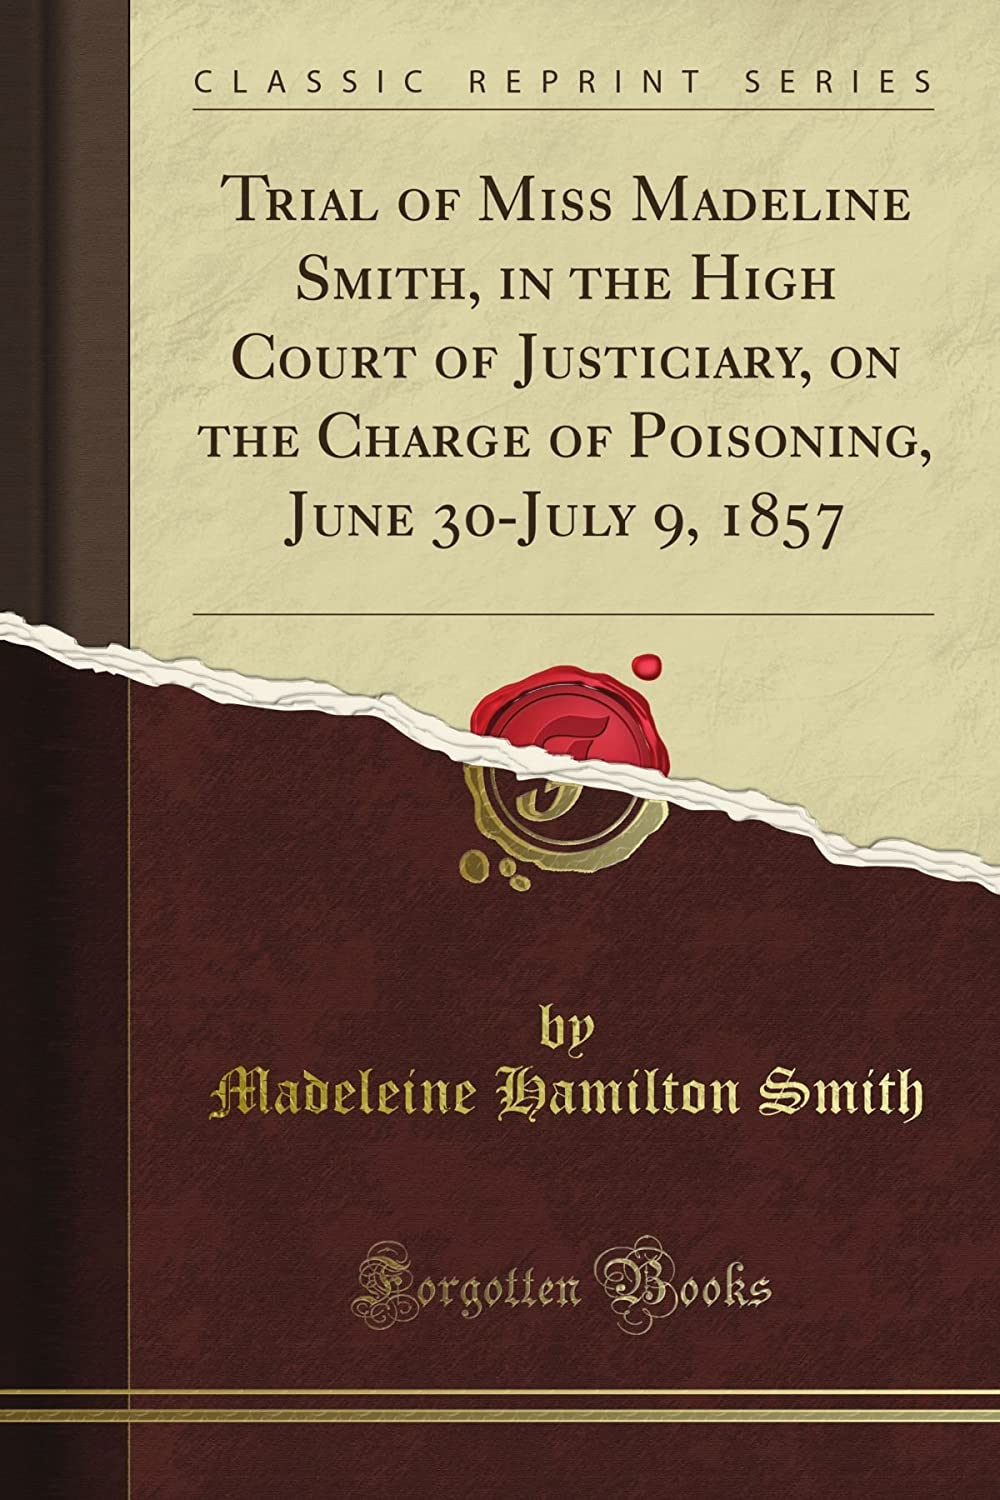 Trial of Miss Madeline Smith, in the High Court of Justiciary, on the Charge of Poisoning, June 30-July 9, 1857 (Classic Reprint)